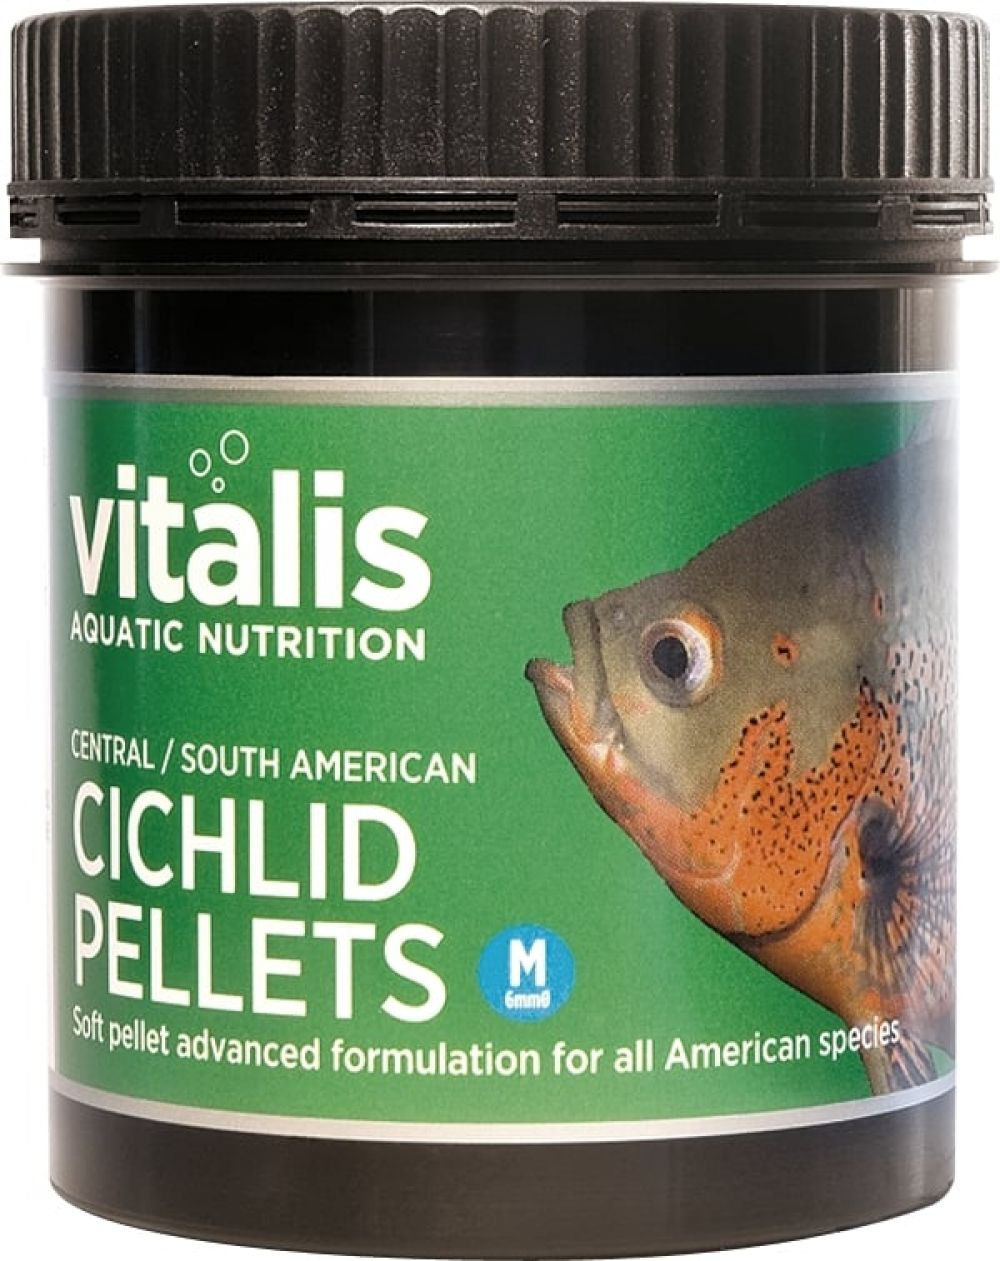 Vitalis Csa Chichild Pellets Price 3295500 Free Shipping Indiefur American Cichlid Fish Recipes Cichlids